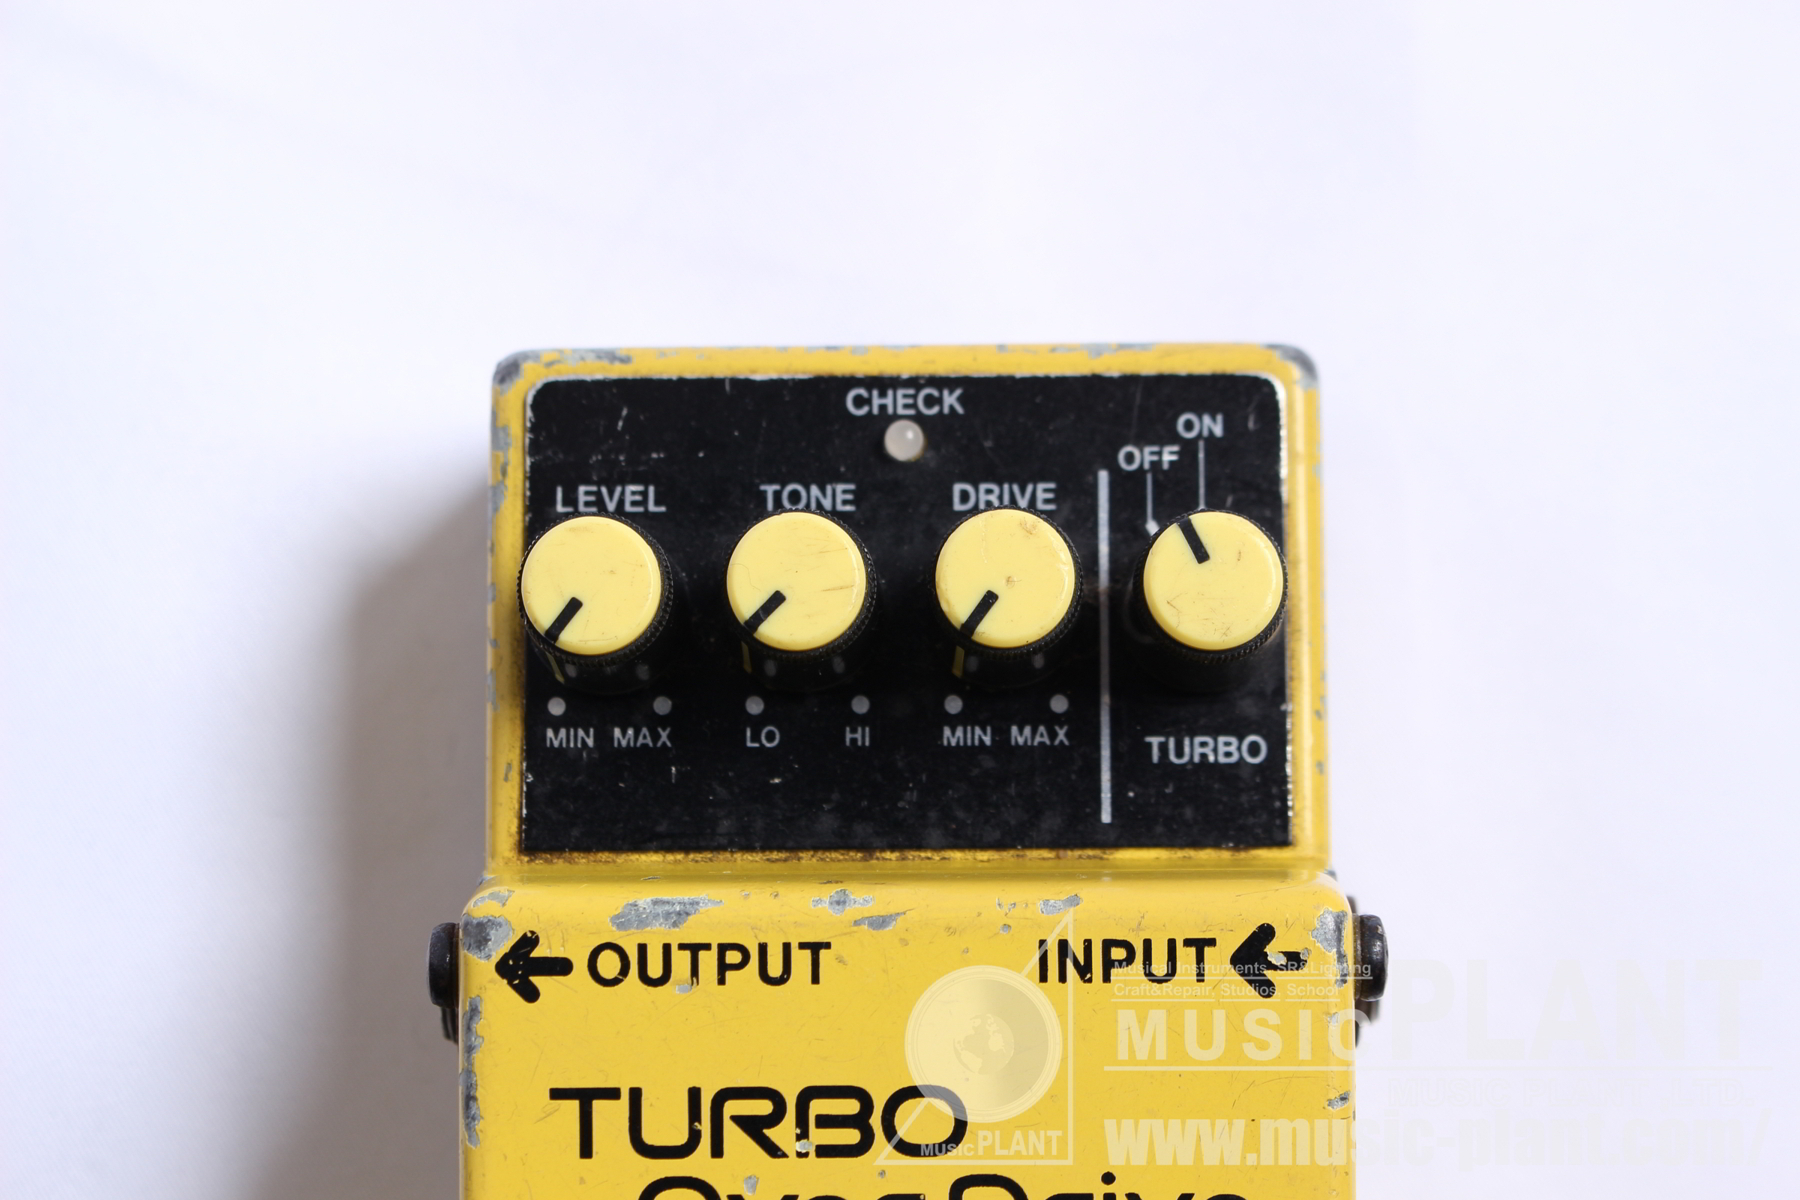 OD-2 TURBO OverDriveパネル画像